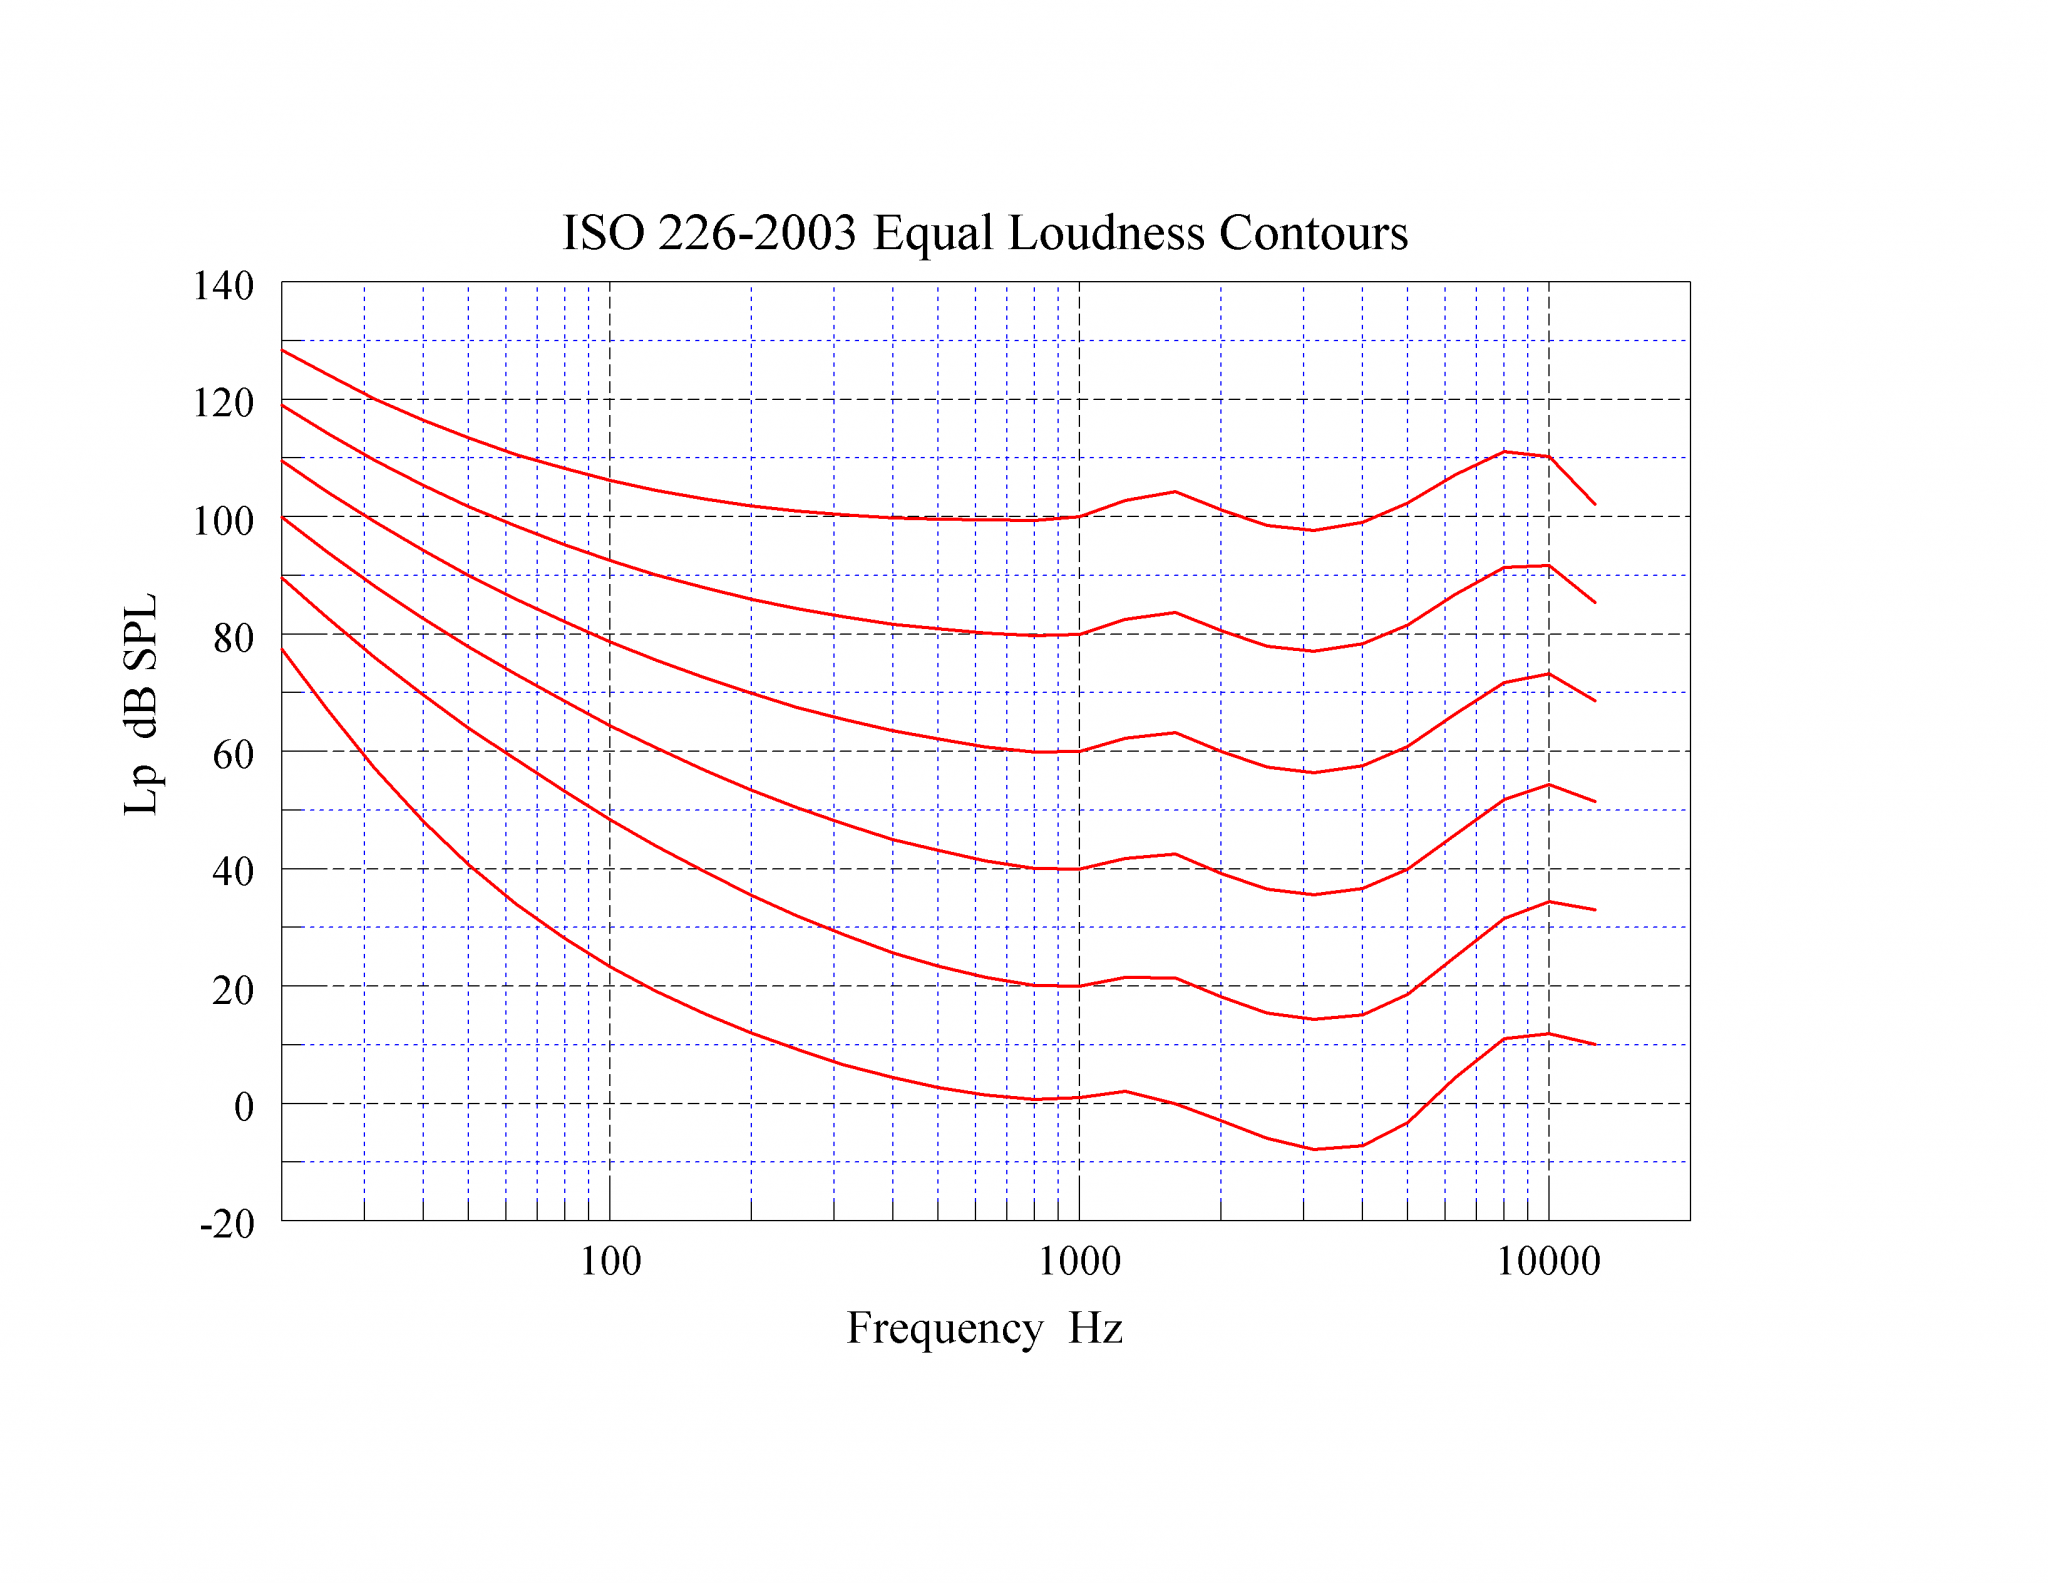 iso226-2003 Equal Loudness Contours v2.png